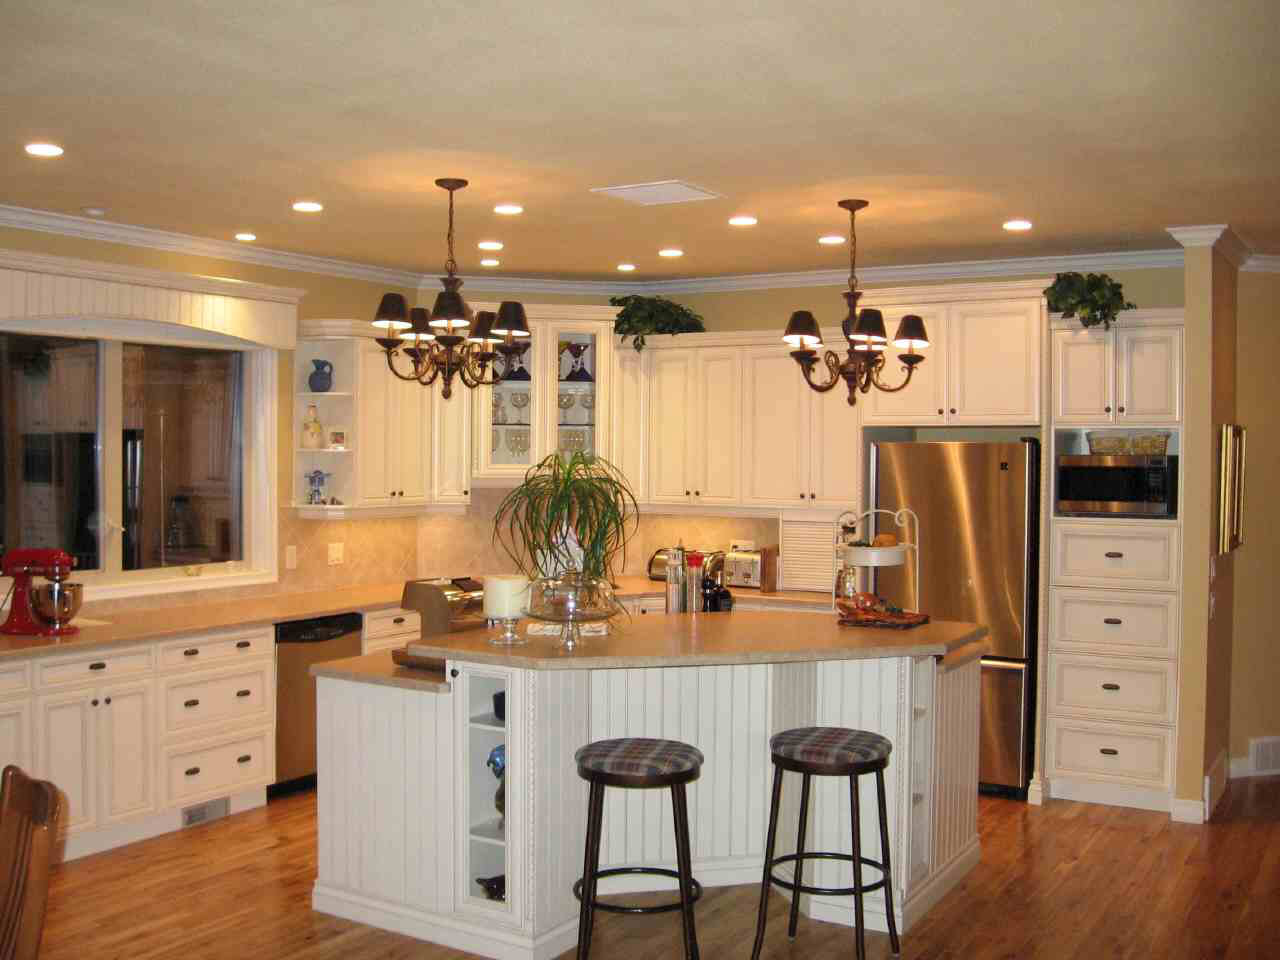 Interior kitchen design ideas home ideas decoration - Home interior design kitchen pictures ...